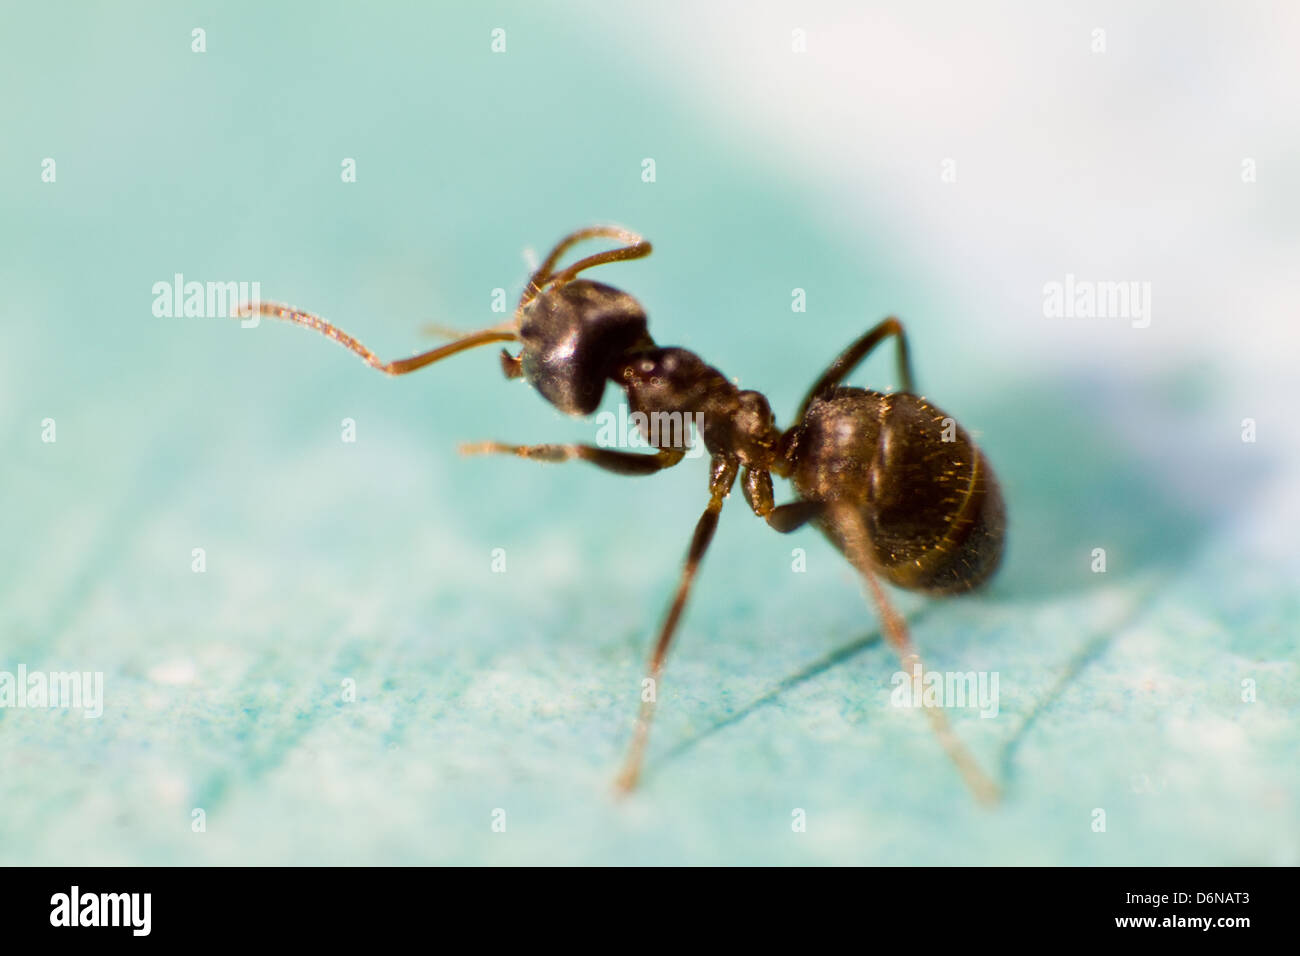 Close Up Ant Stock Photos & Close Up Ant Stock Images - Alamy